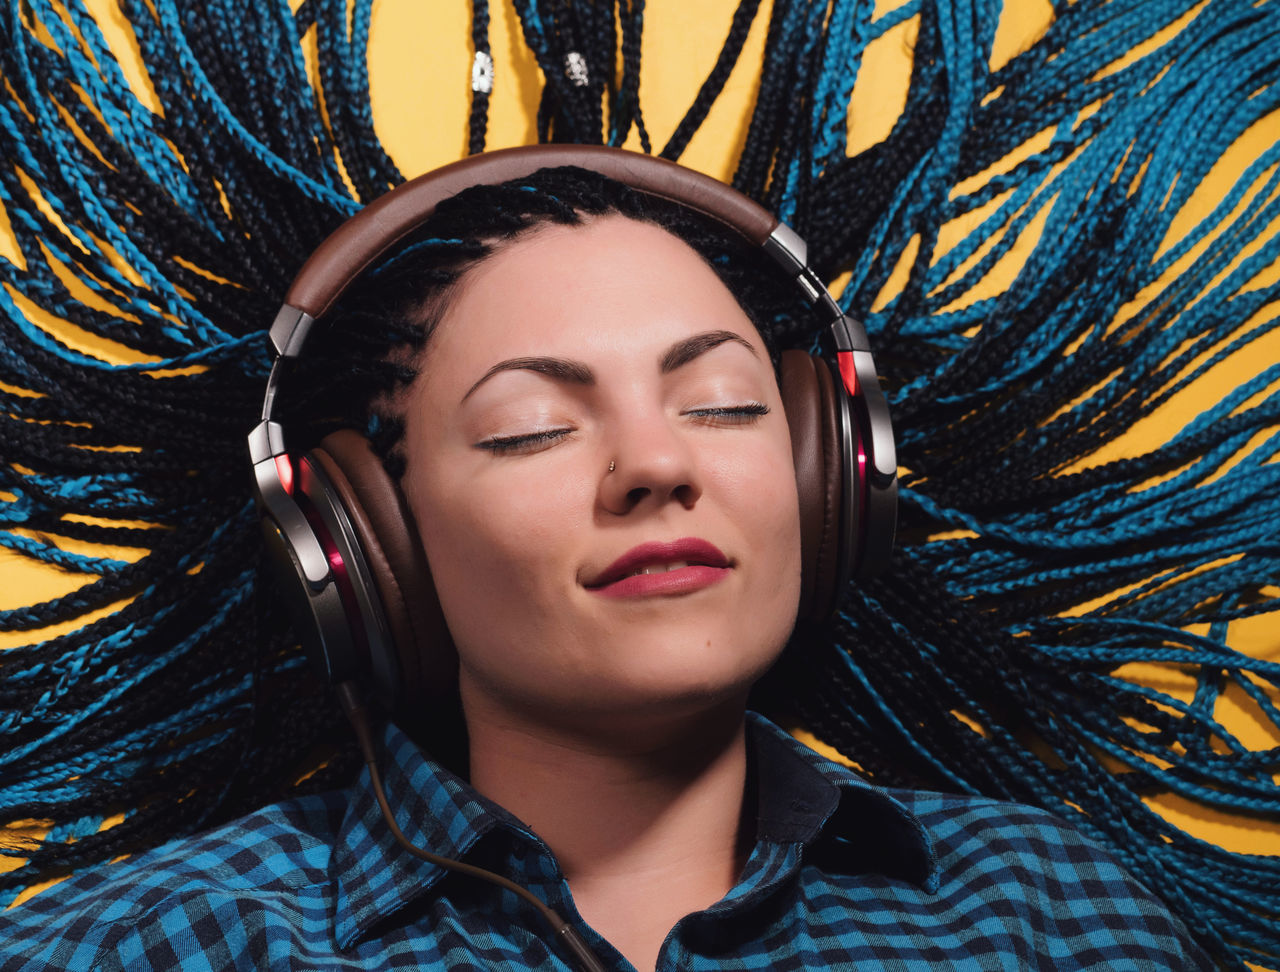 Close-Up Of Young Woman With Braided Hair Listening To Music Against Yellow Background